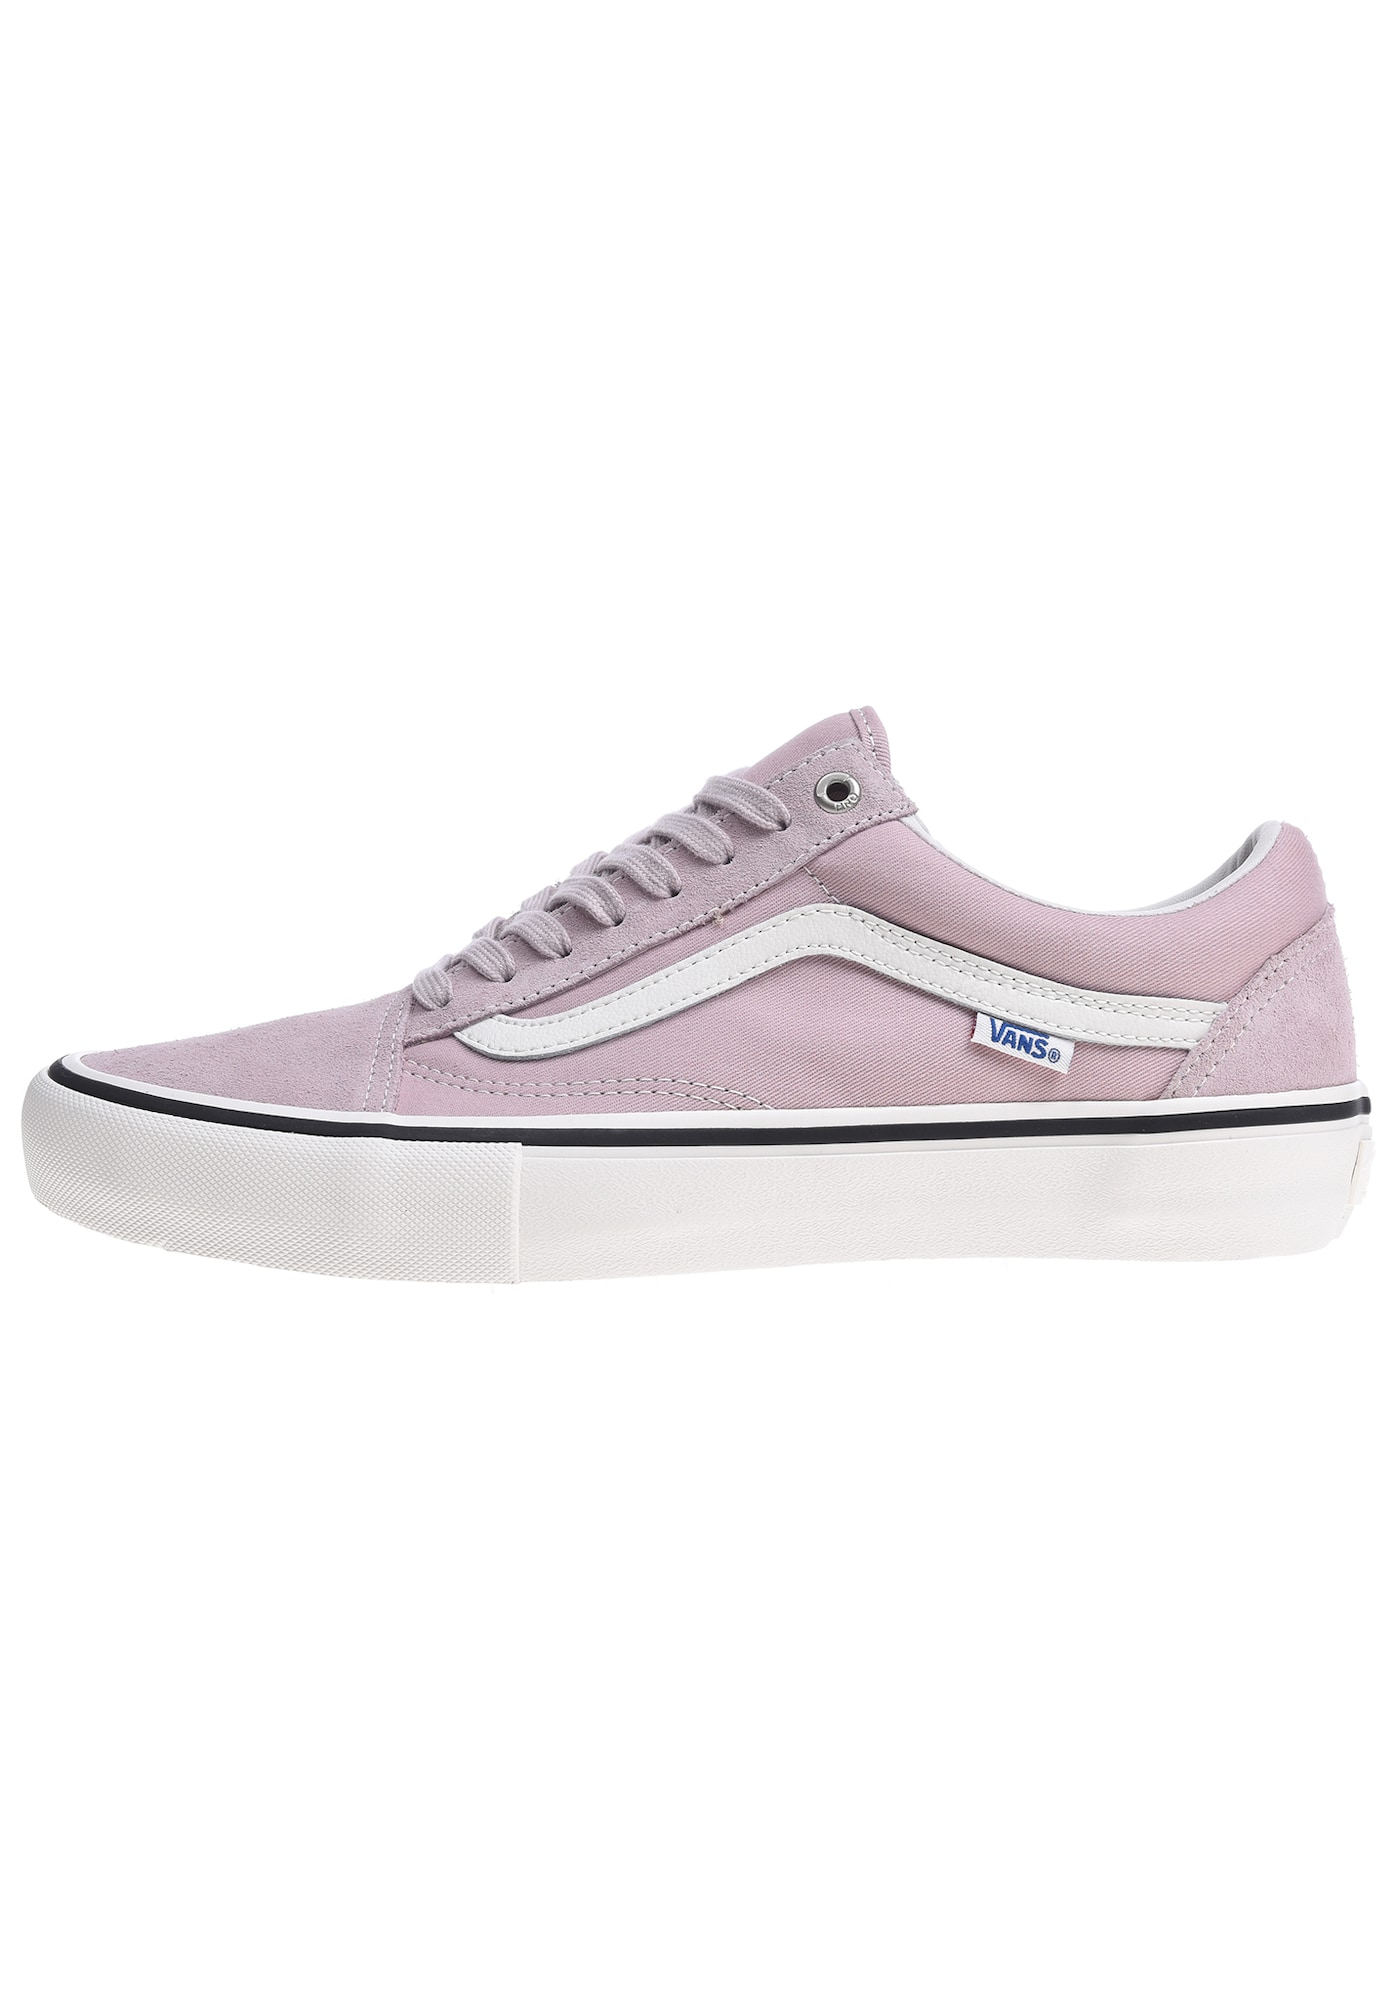 VANS, Heren Sneakers laag 'Old Skool Pro', lichtlila / wit